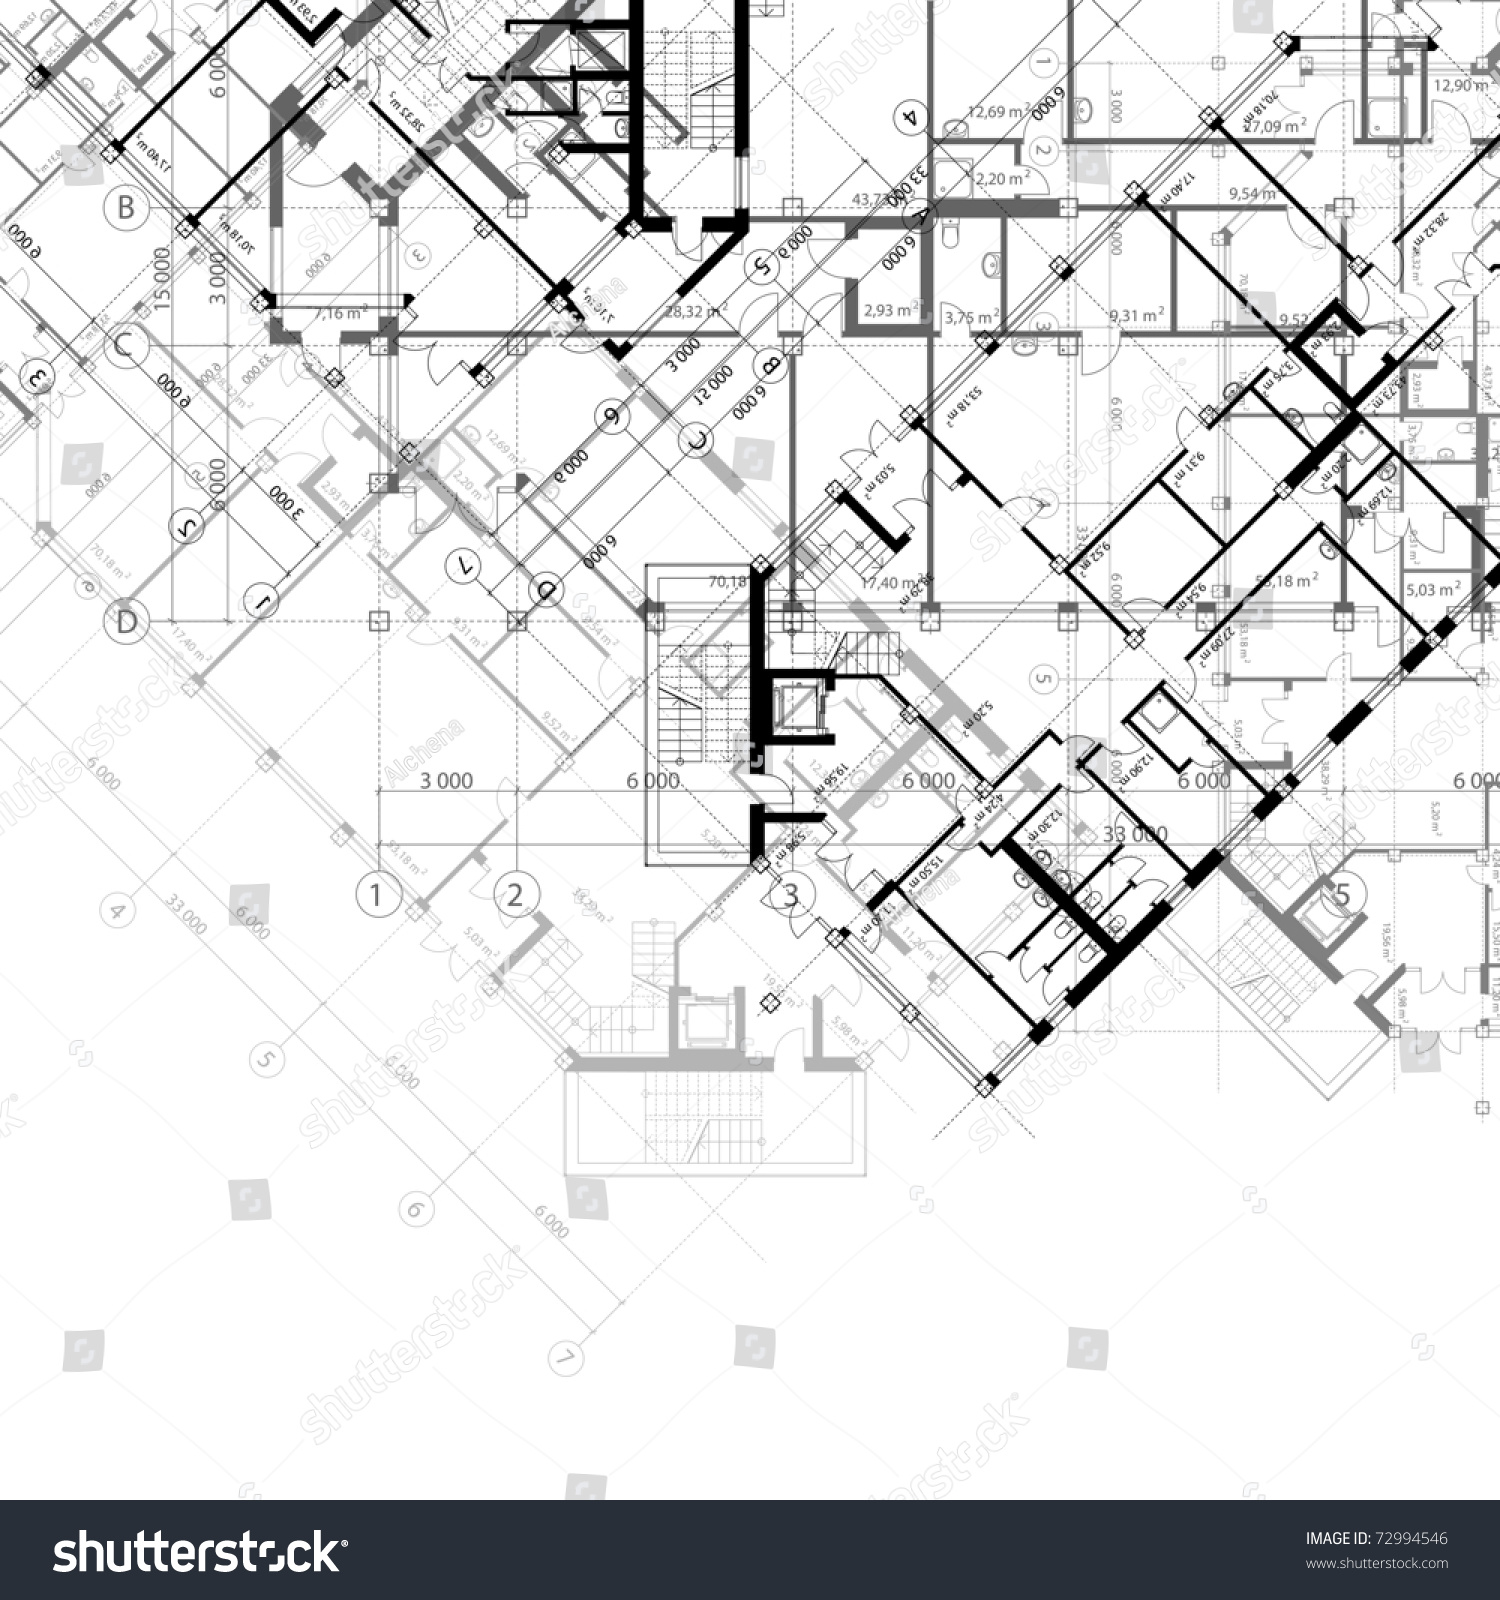 Vector architectural black white background plans stock Portfolio home plans